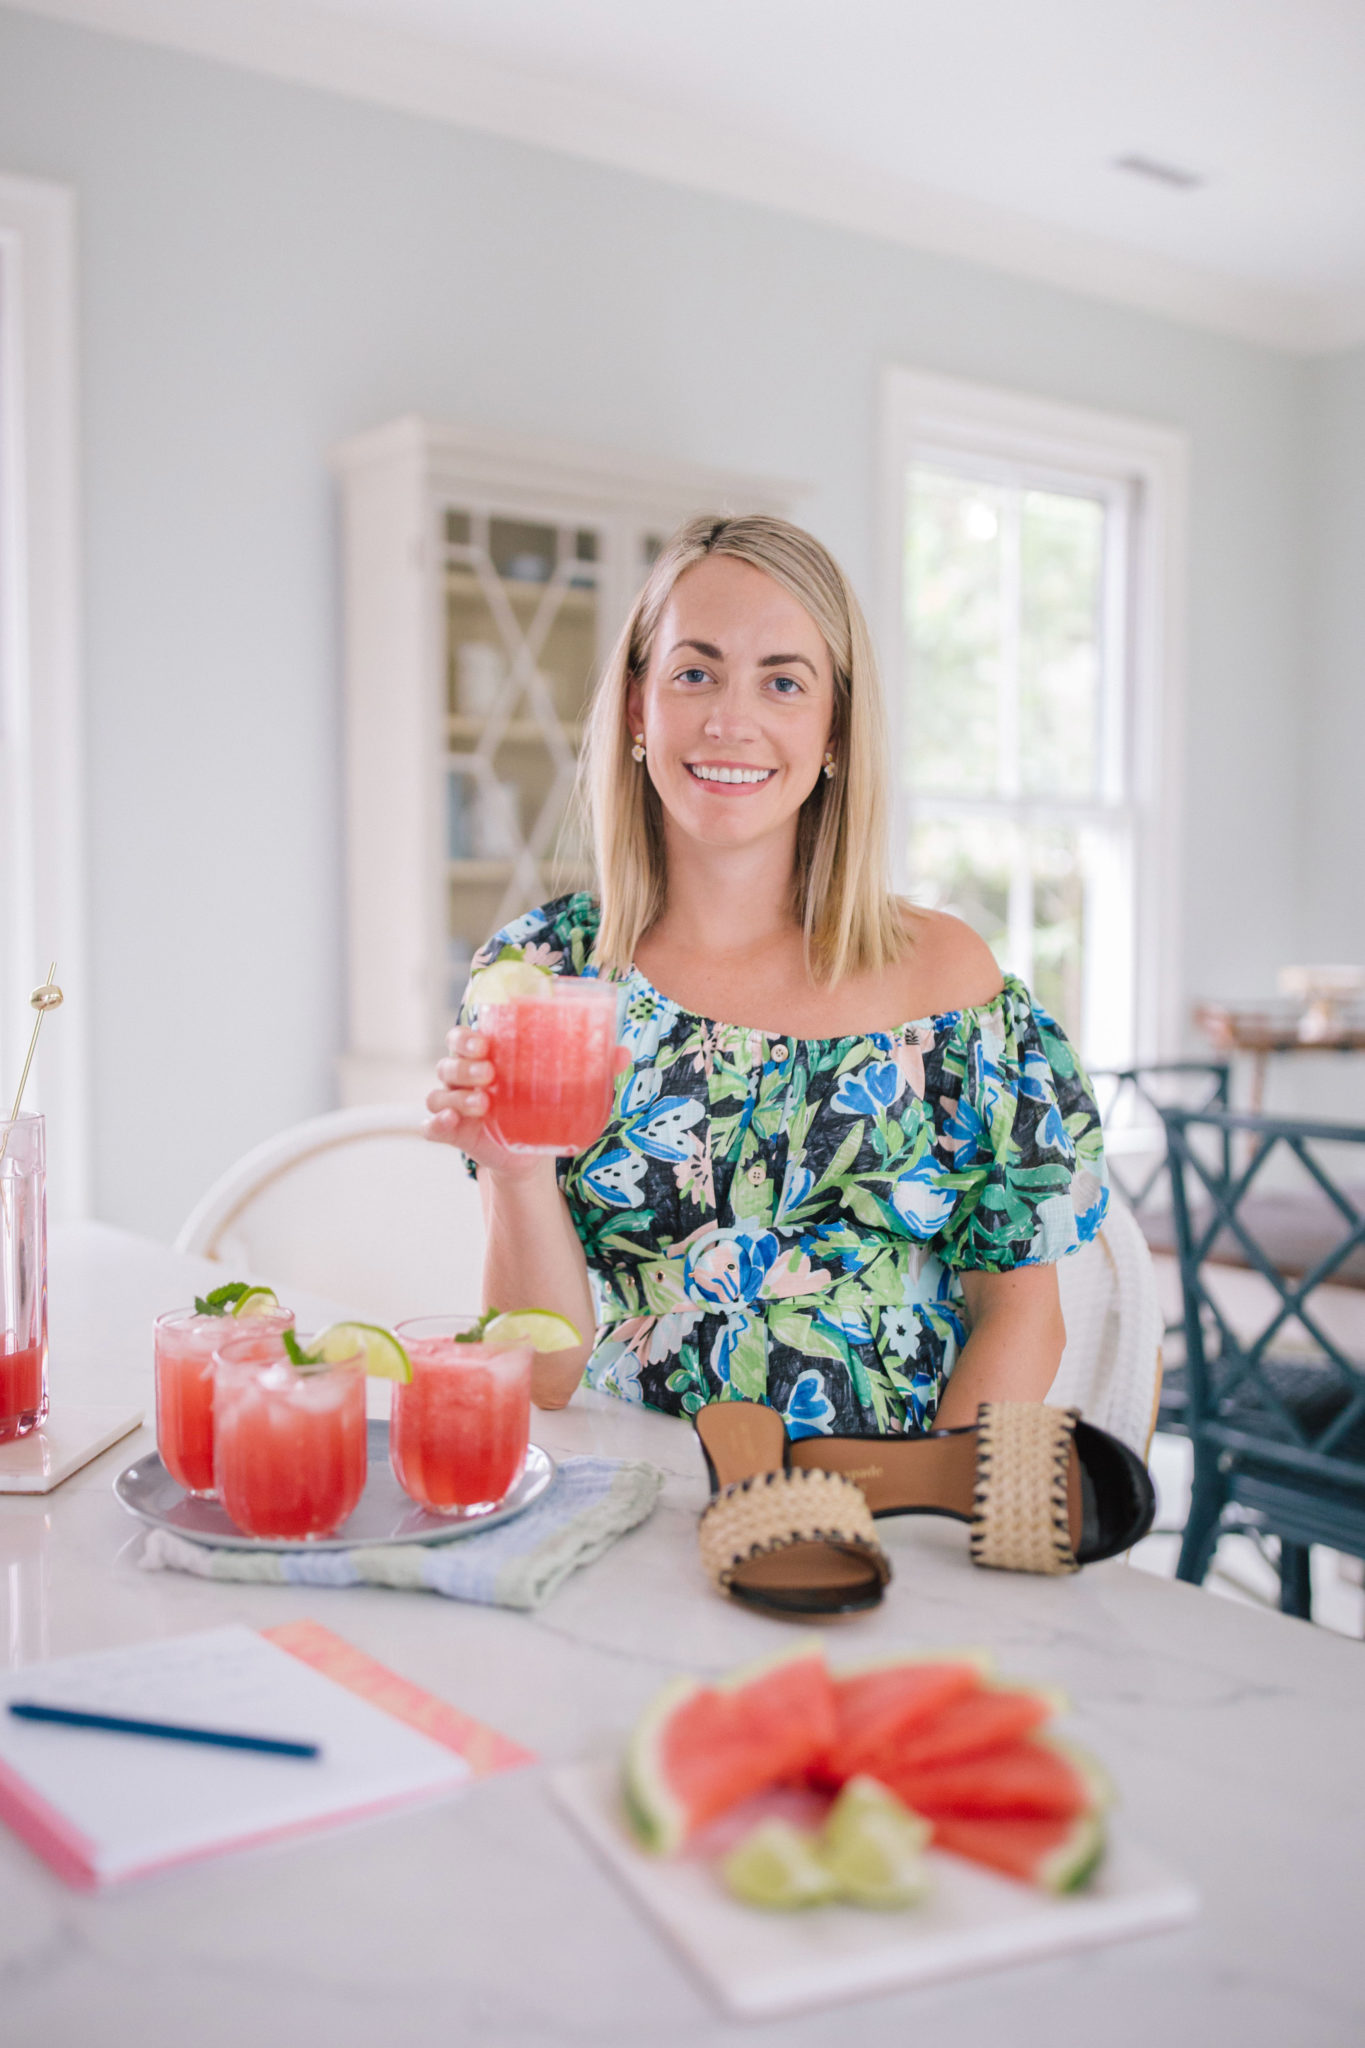 The most refreshing agua fresca recipes to make at home this summer | Rhyme & Reason